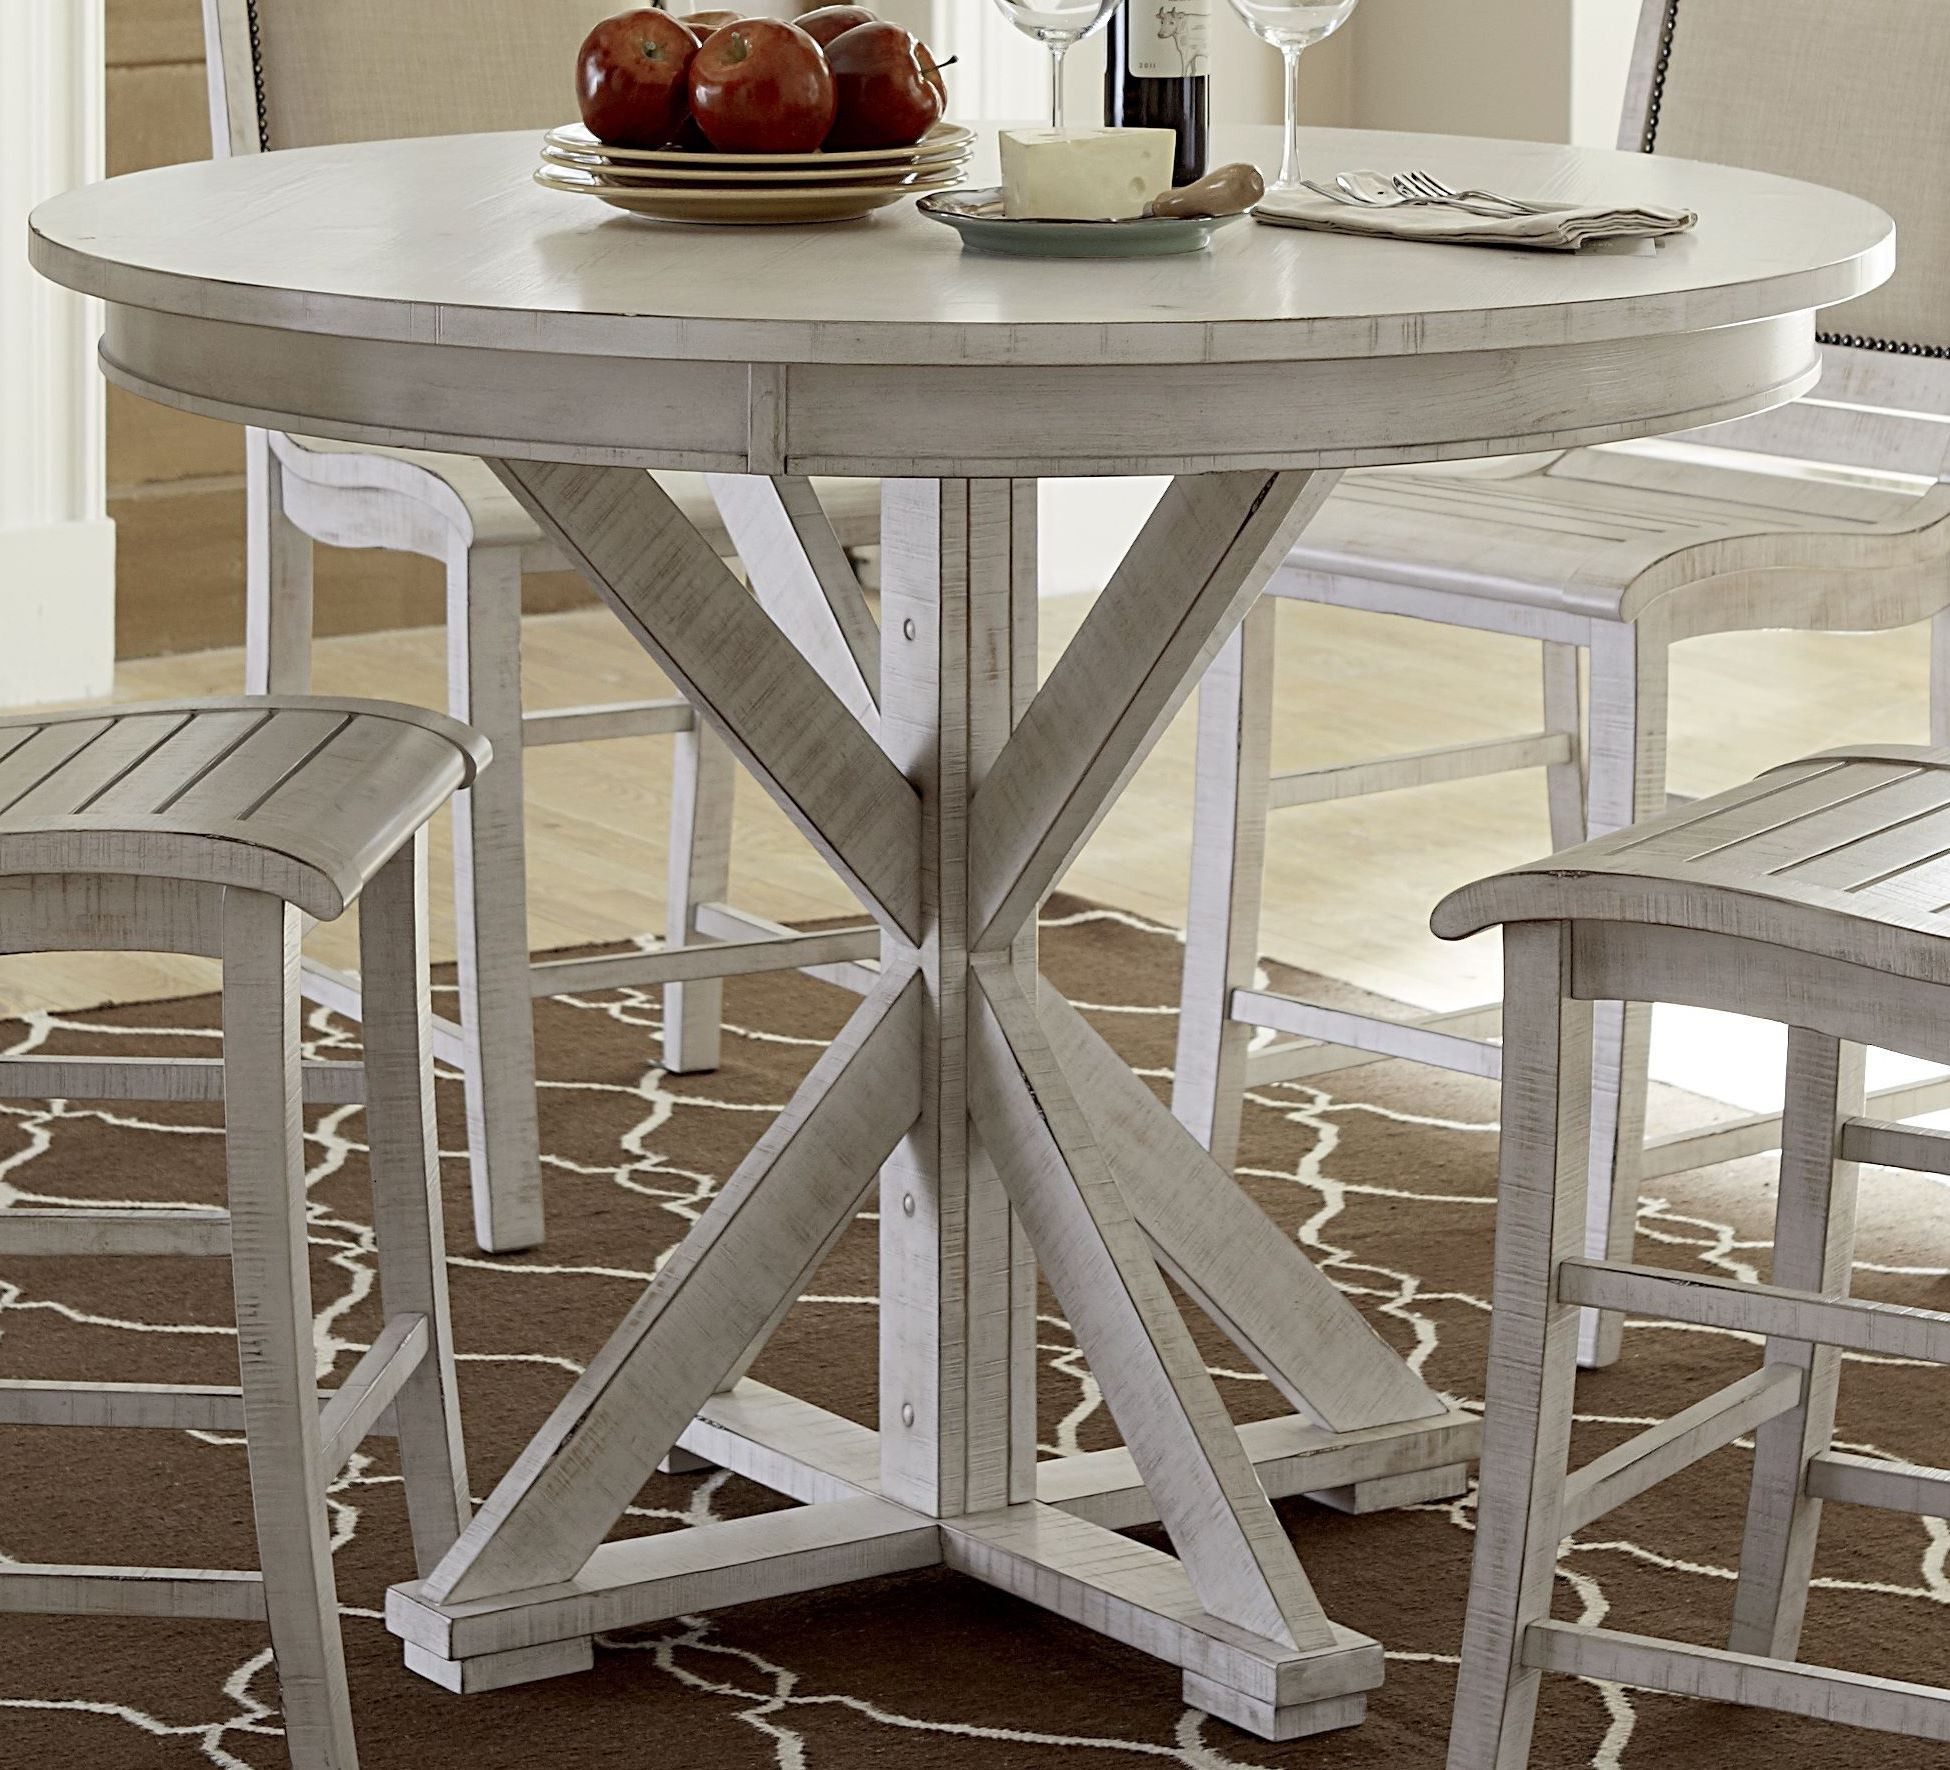 Willow distressed white round counter height dining table for Distressed round dining table